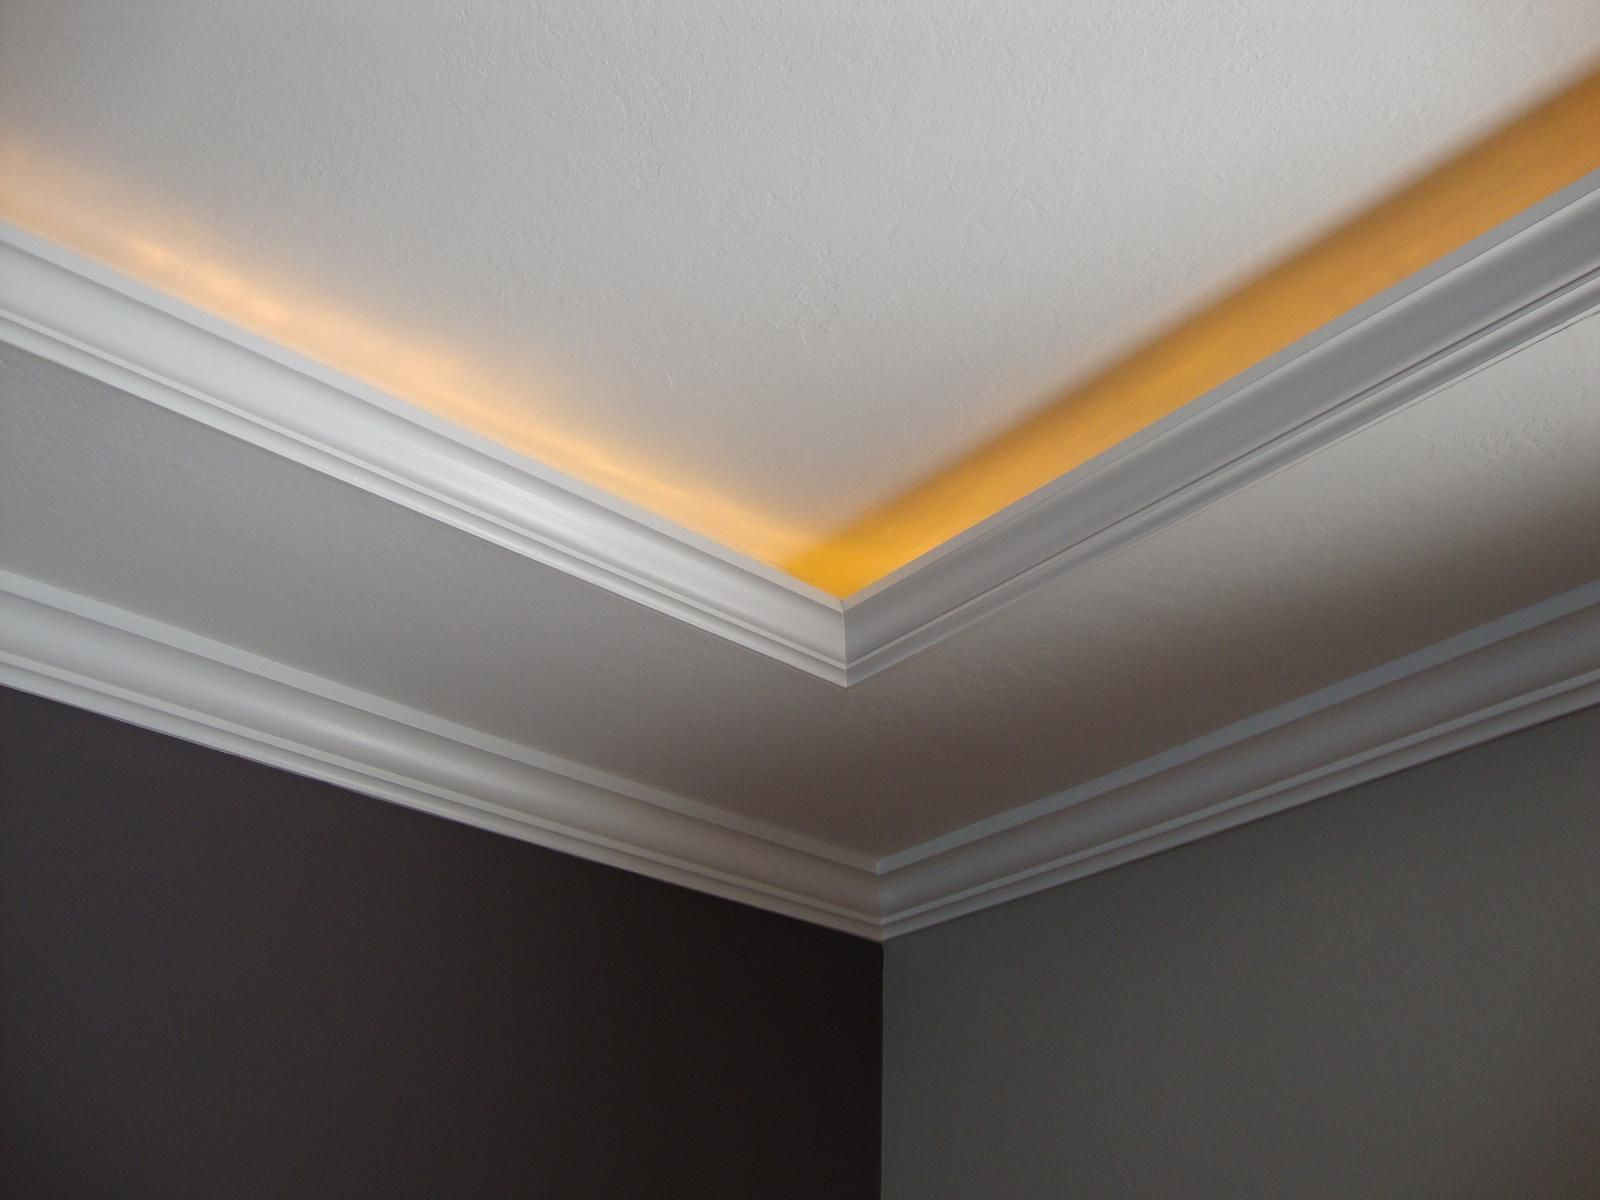 Hidden Lighting another tray ceiling/recessed lighting idea to replace the